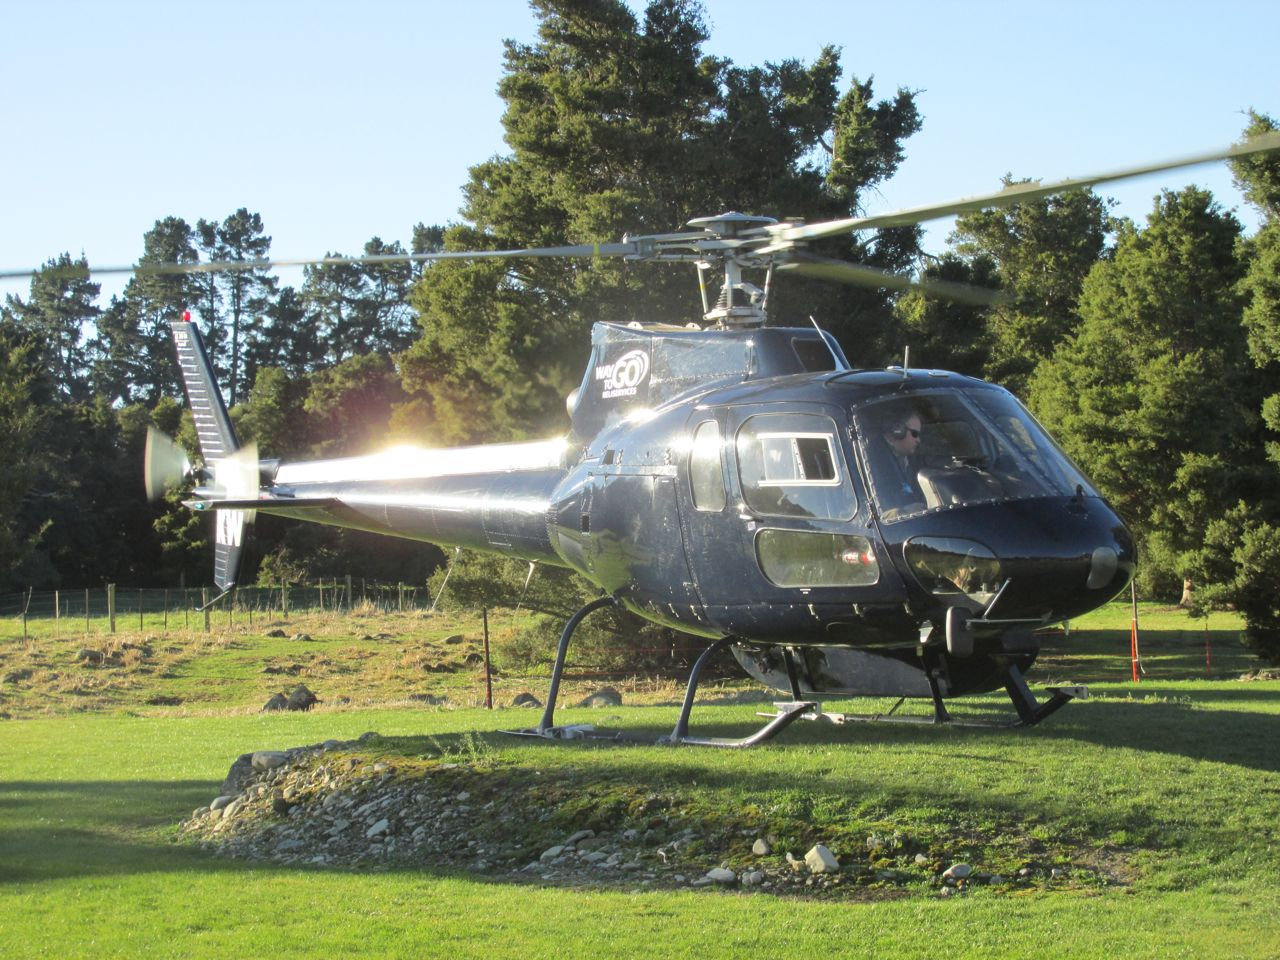 Helicopter on lodge heli-pad